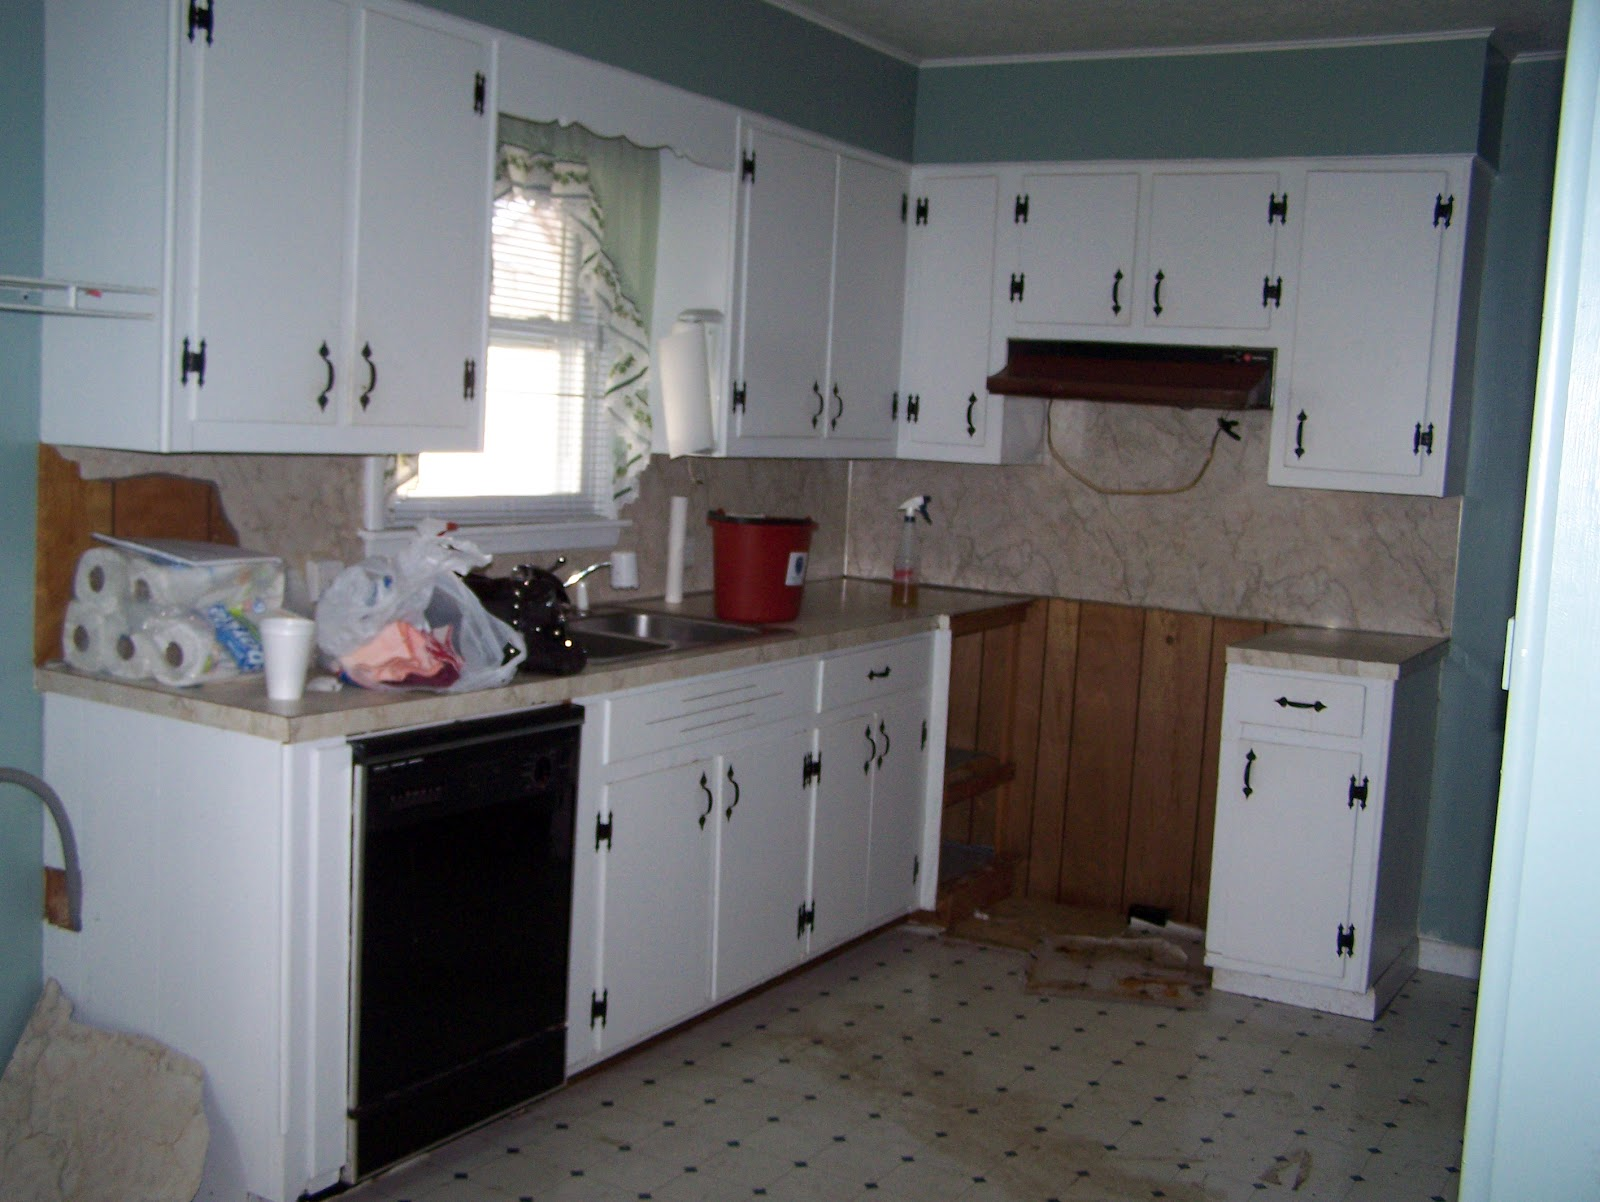 updating old kitchen cabinets with trim old kitchen cabinets Updating old kitchen cabinets